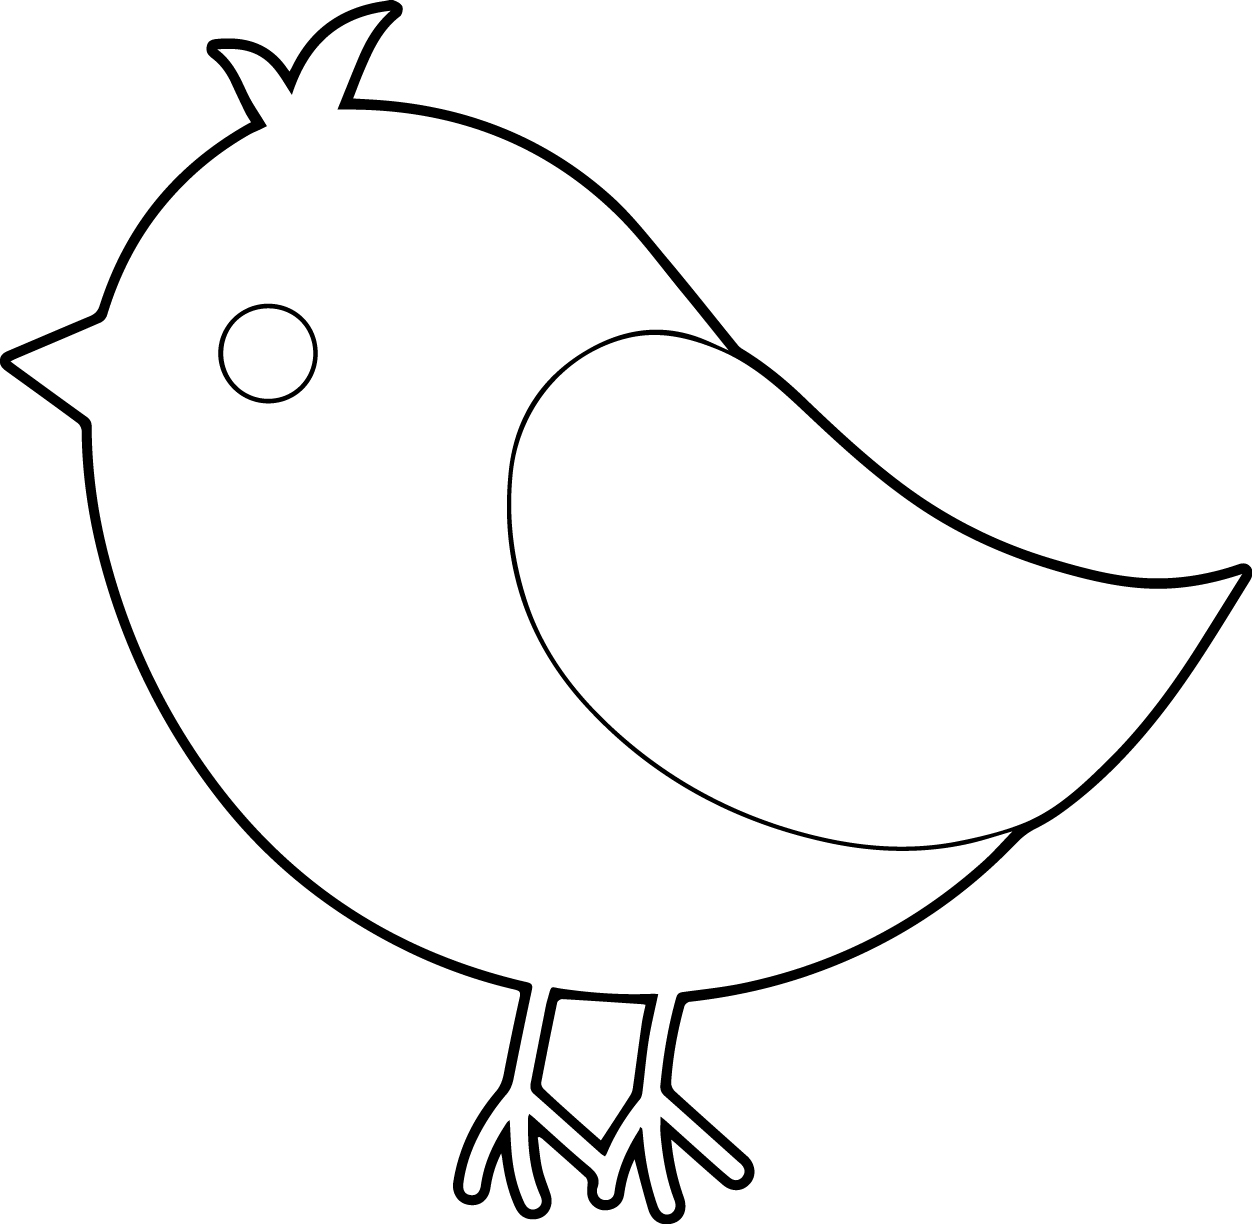 Simple Bird Line Drawing at GetDrawings